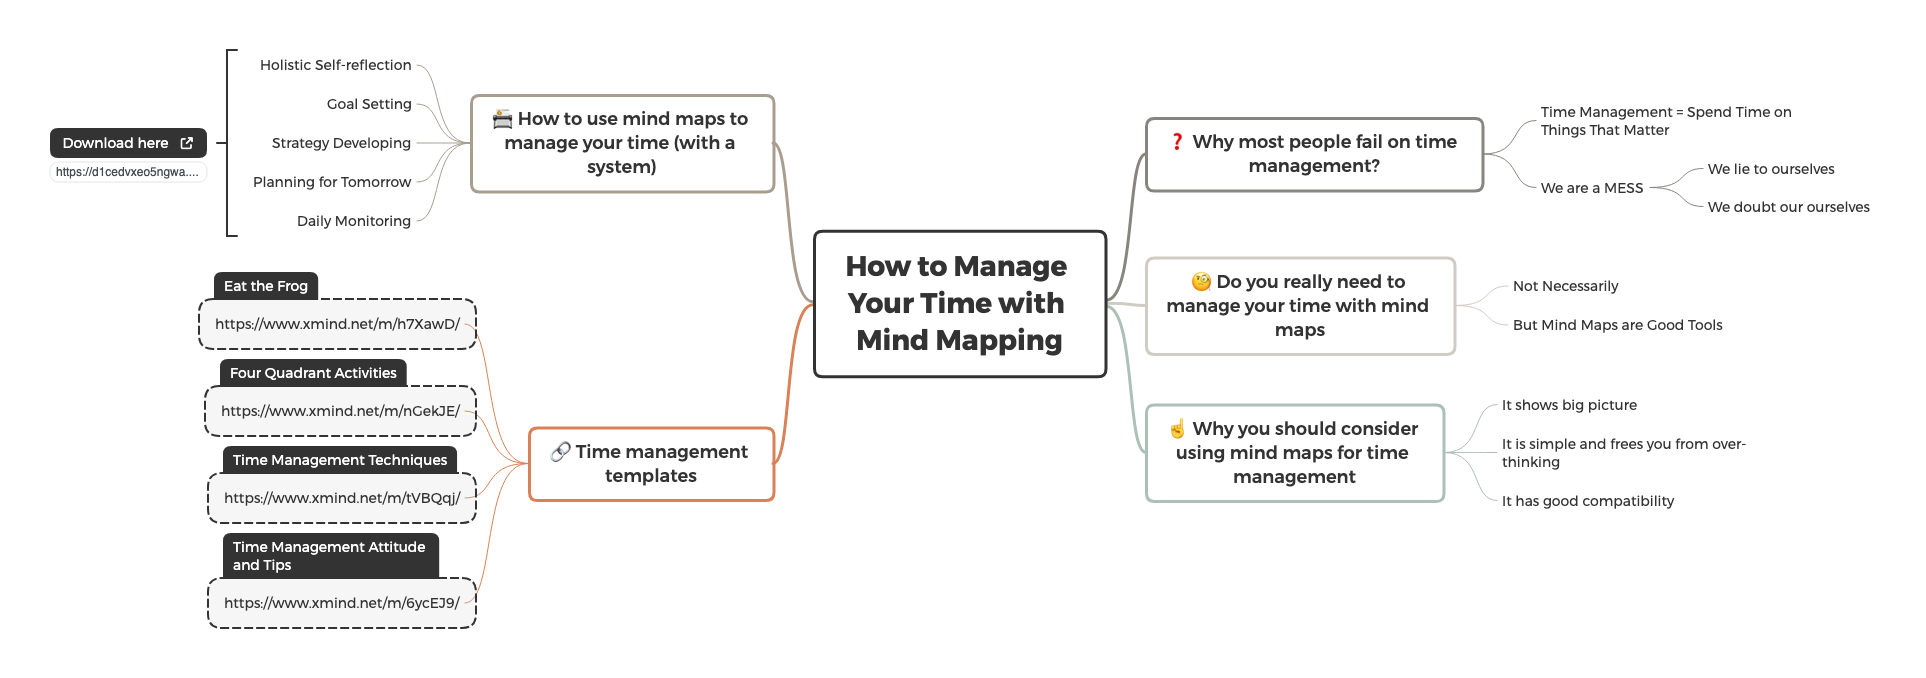 - Why do most people fail on time management? - Do you really need to manage your time with mind maps - Why you should consider using mind maps for time management - How to use mind maps to manage your time (with a system) - Time management templates